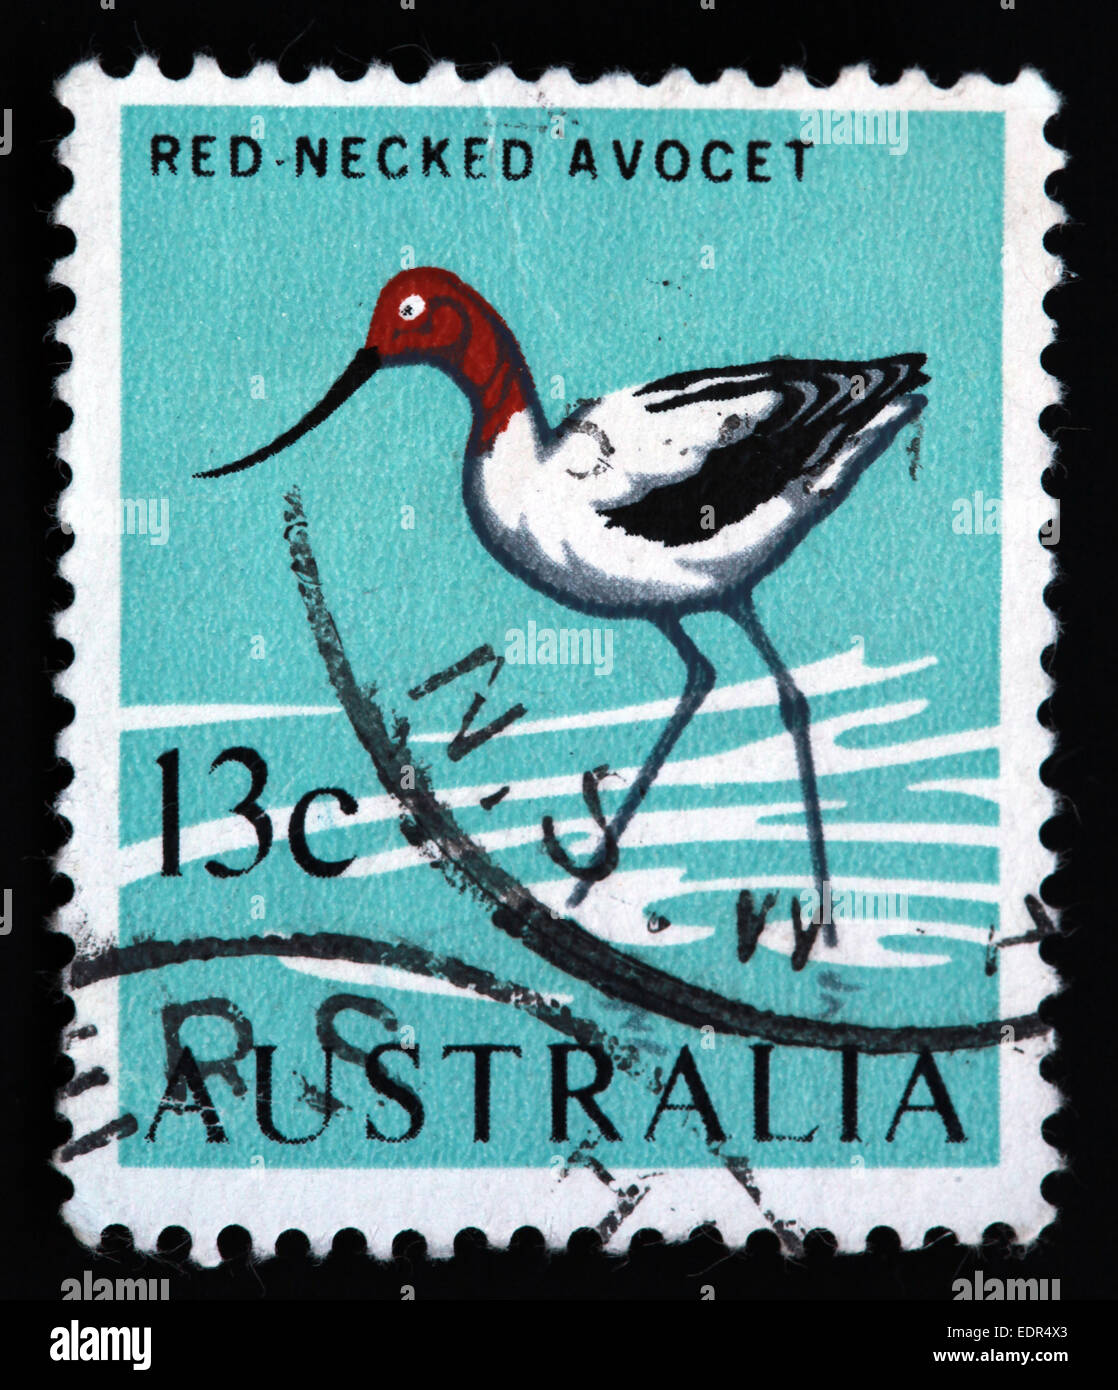 Used and postmarked Australia / Austrailian Stamp Red Necked Avocet 13c - Stock Image